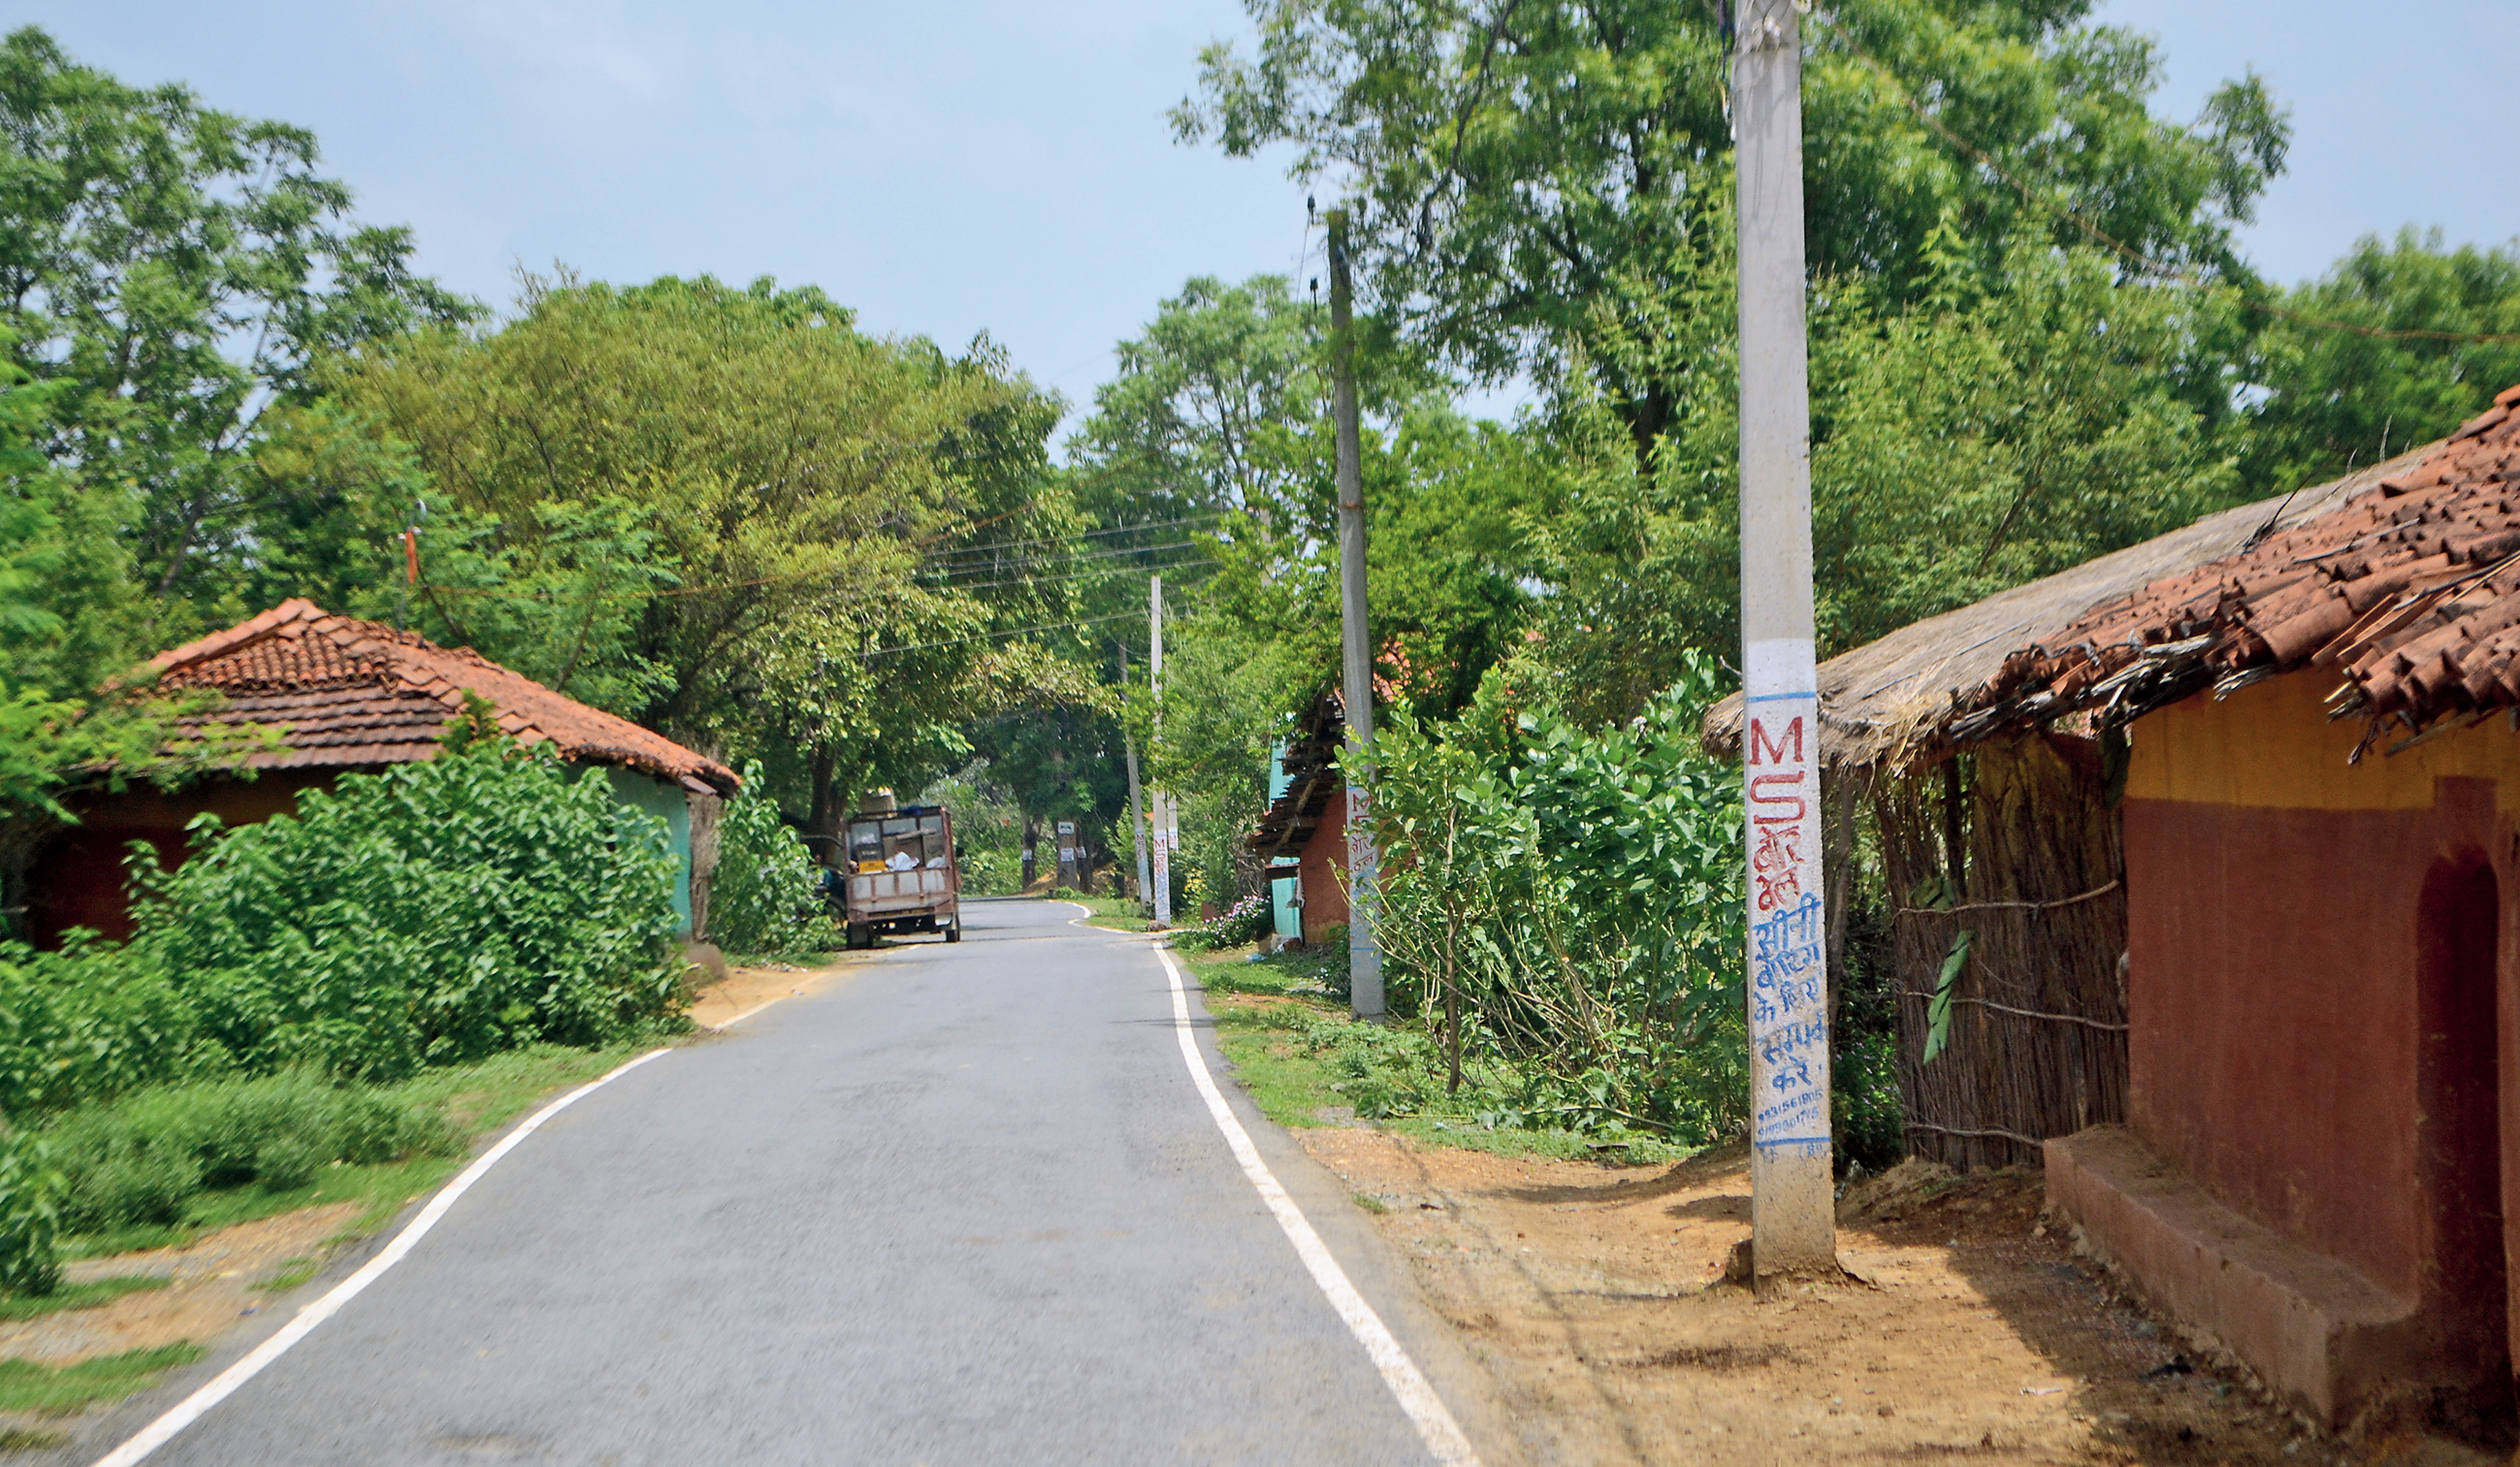 """The concrete pole to which Tabrez Ansari, a welder accused of theft, was tied and beaten at Dhatkidih village in Seraikela, around 35km from Jamshedpur, in the wee hours of June 19.  Tabrez died in judicial custody on Saturday. Police said a video clip that shows Tabrez being forced to chant """"Jai Shri Ram"""" and """"Jai Hanuman"""" while being tied to the pole appeared to have been tampered with. The tape will be sent for forensic tests.  However, on Monday, Mamta Devi, a health worker, quoted her sister-in-law Maya Mahali as saying that Tabrez was beaten and forced to utter """"Jai Shri Ram""""."""